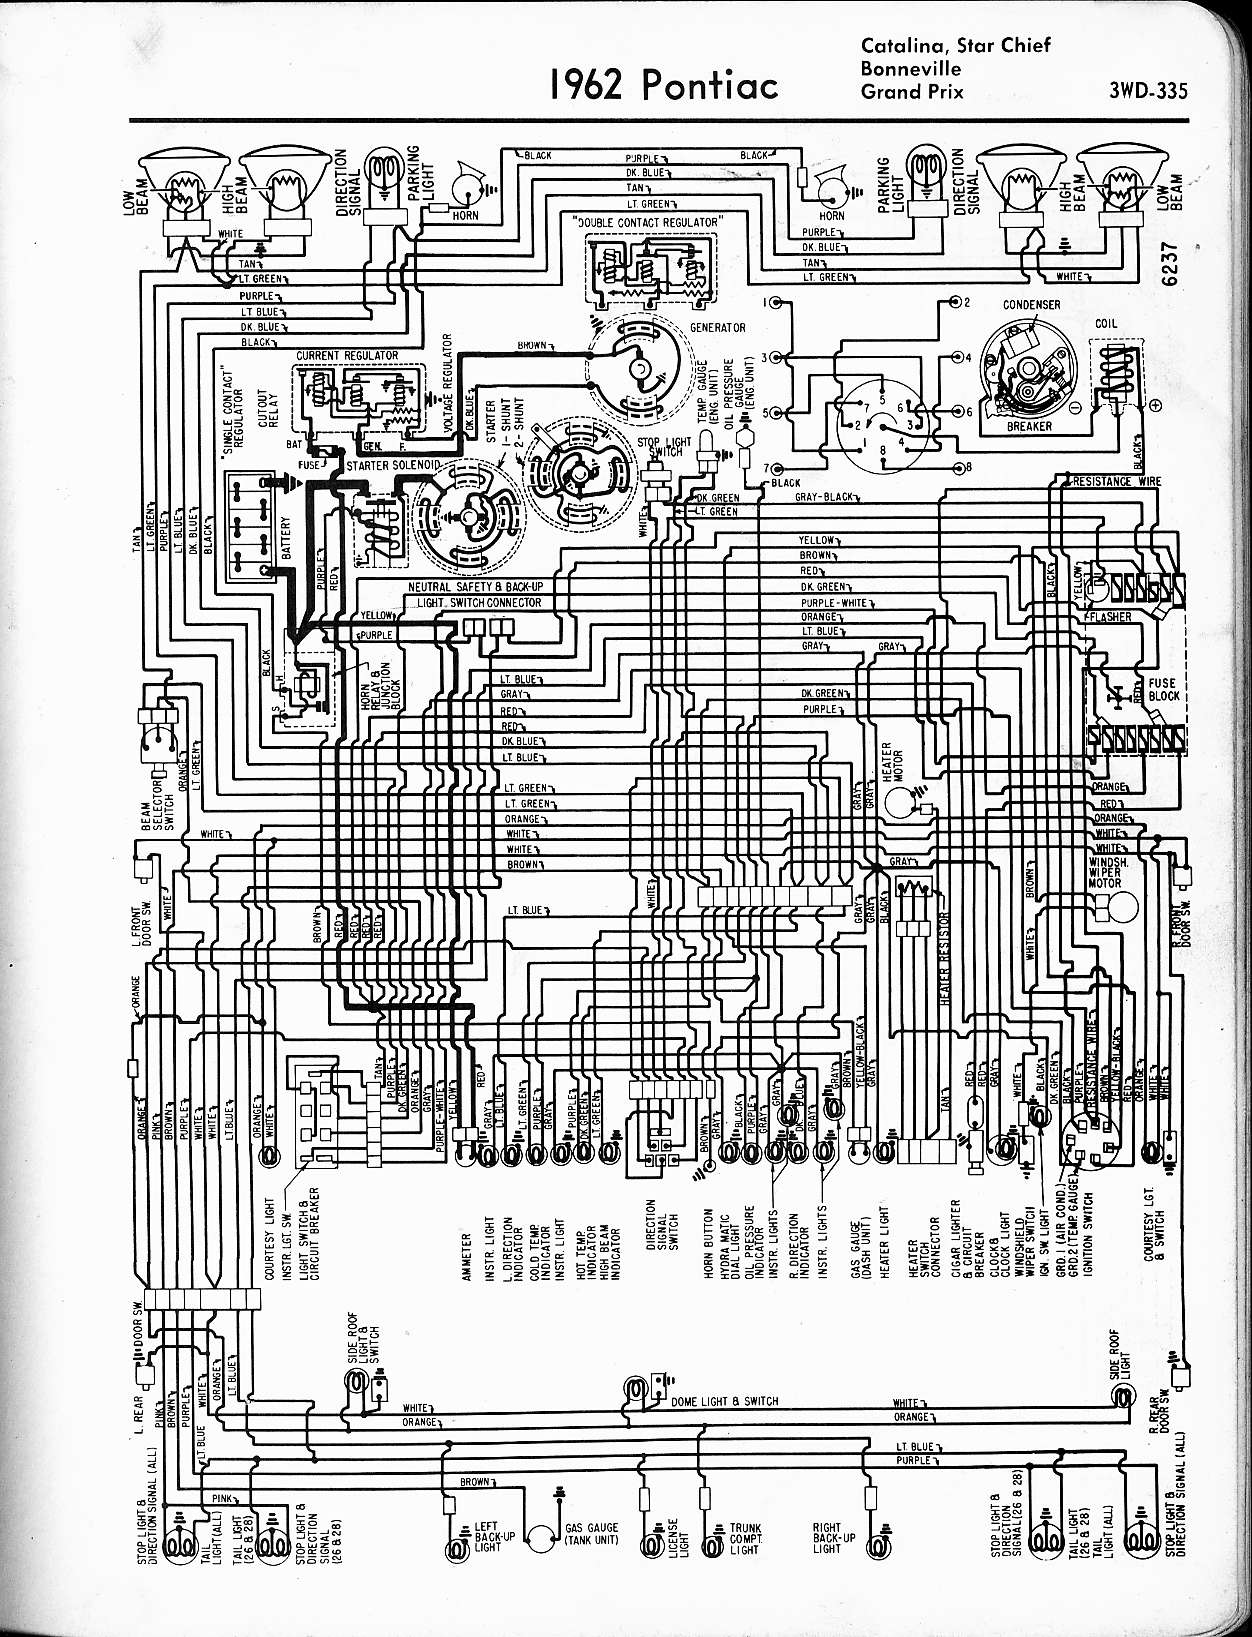 wallace racing wiring diagrams rh wallaceracing com 2003 Mercedes C320 Fuse  Diagram Mercedes C300 Fuse Diagram